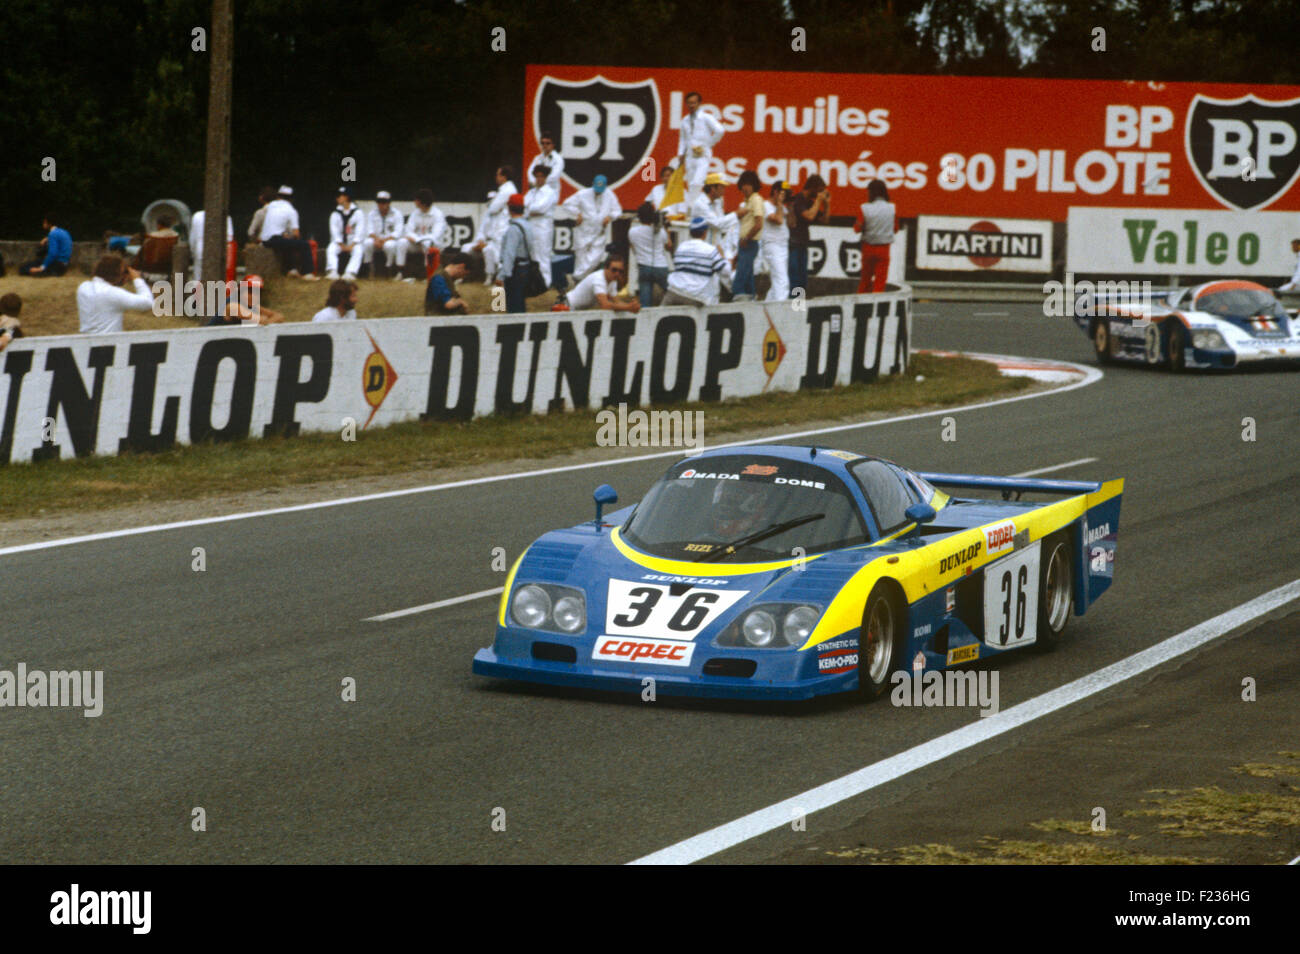 36 Chris Craft and Eliseo Salazar Dome RC82 at the Mulsanne Corner at Le Mans 20th June 1982 - Stock Image